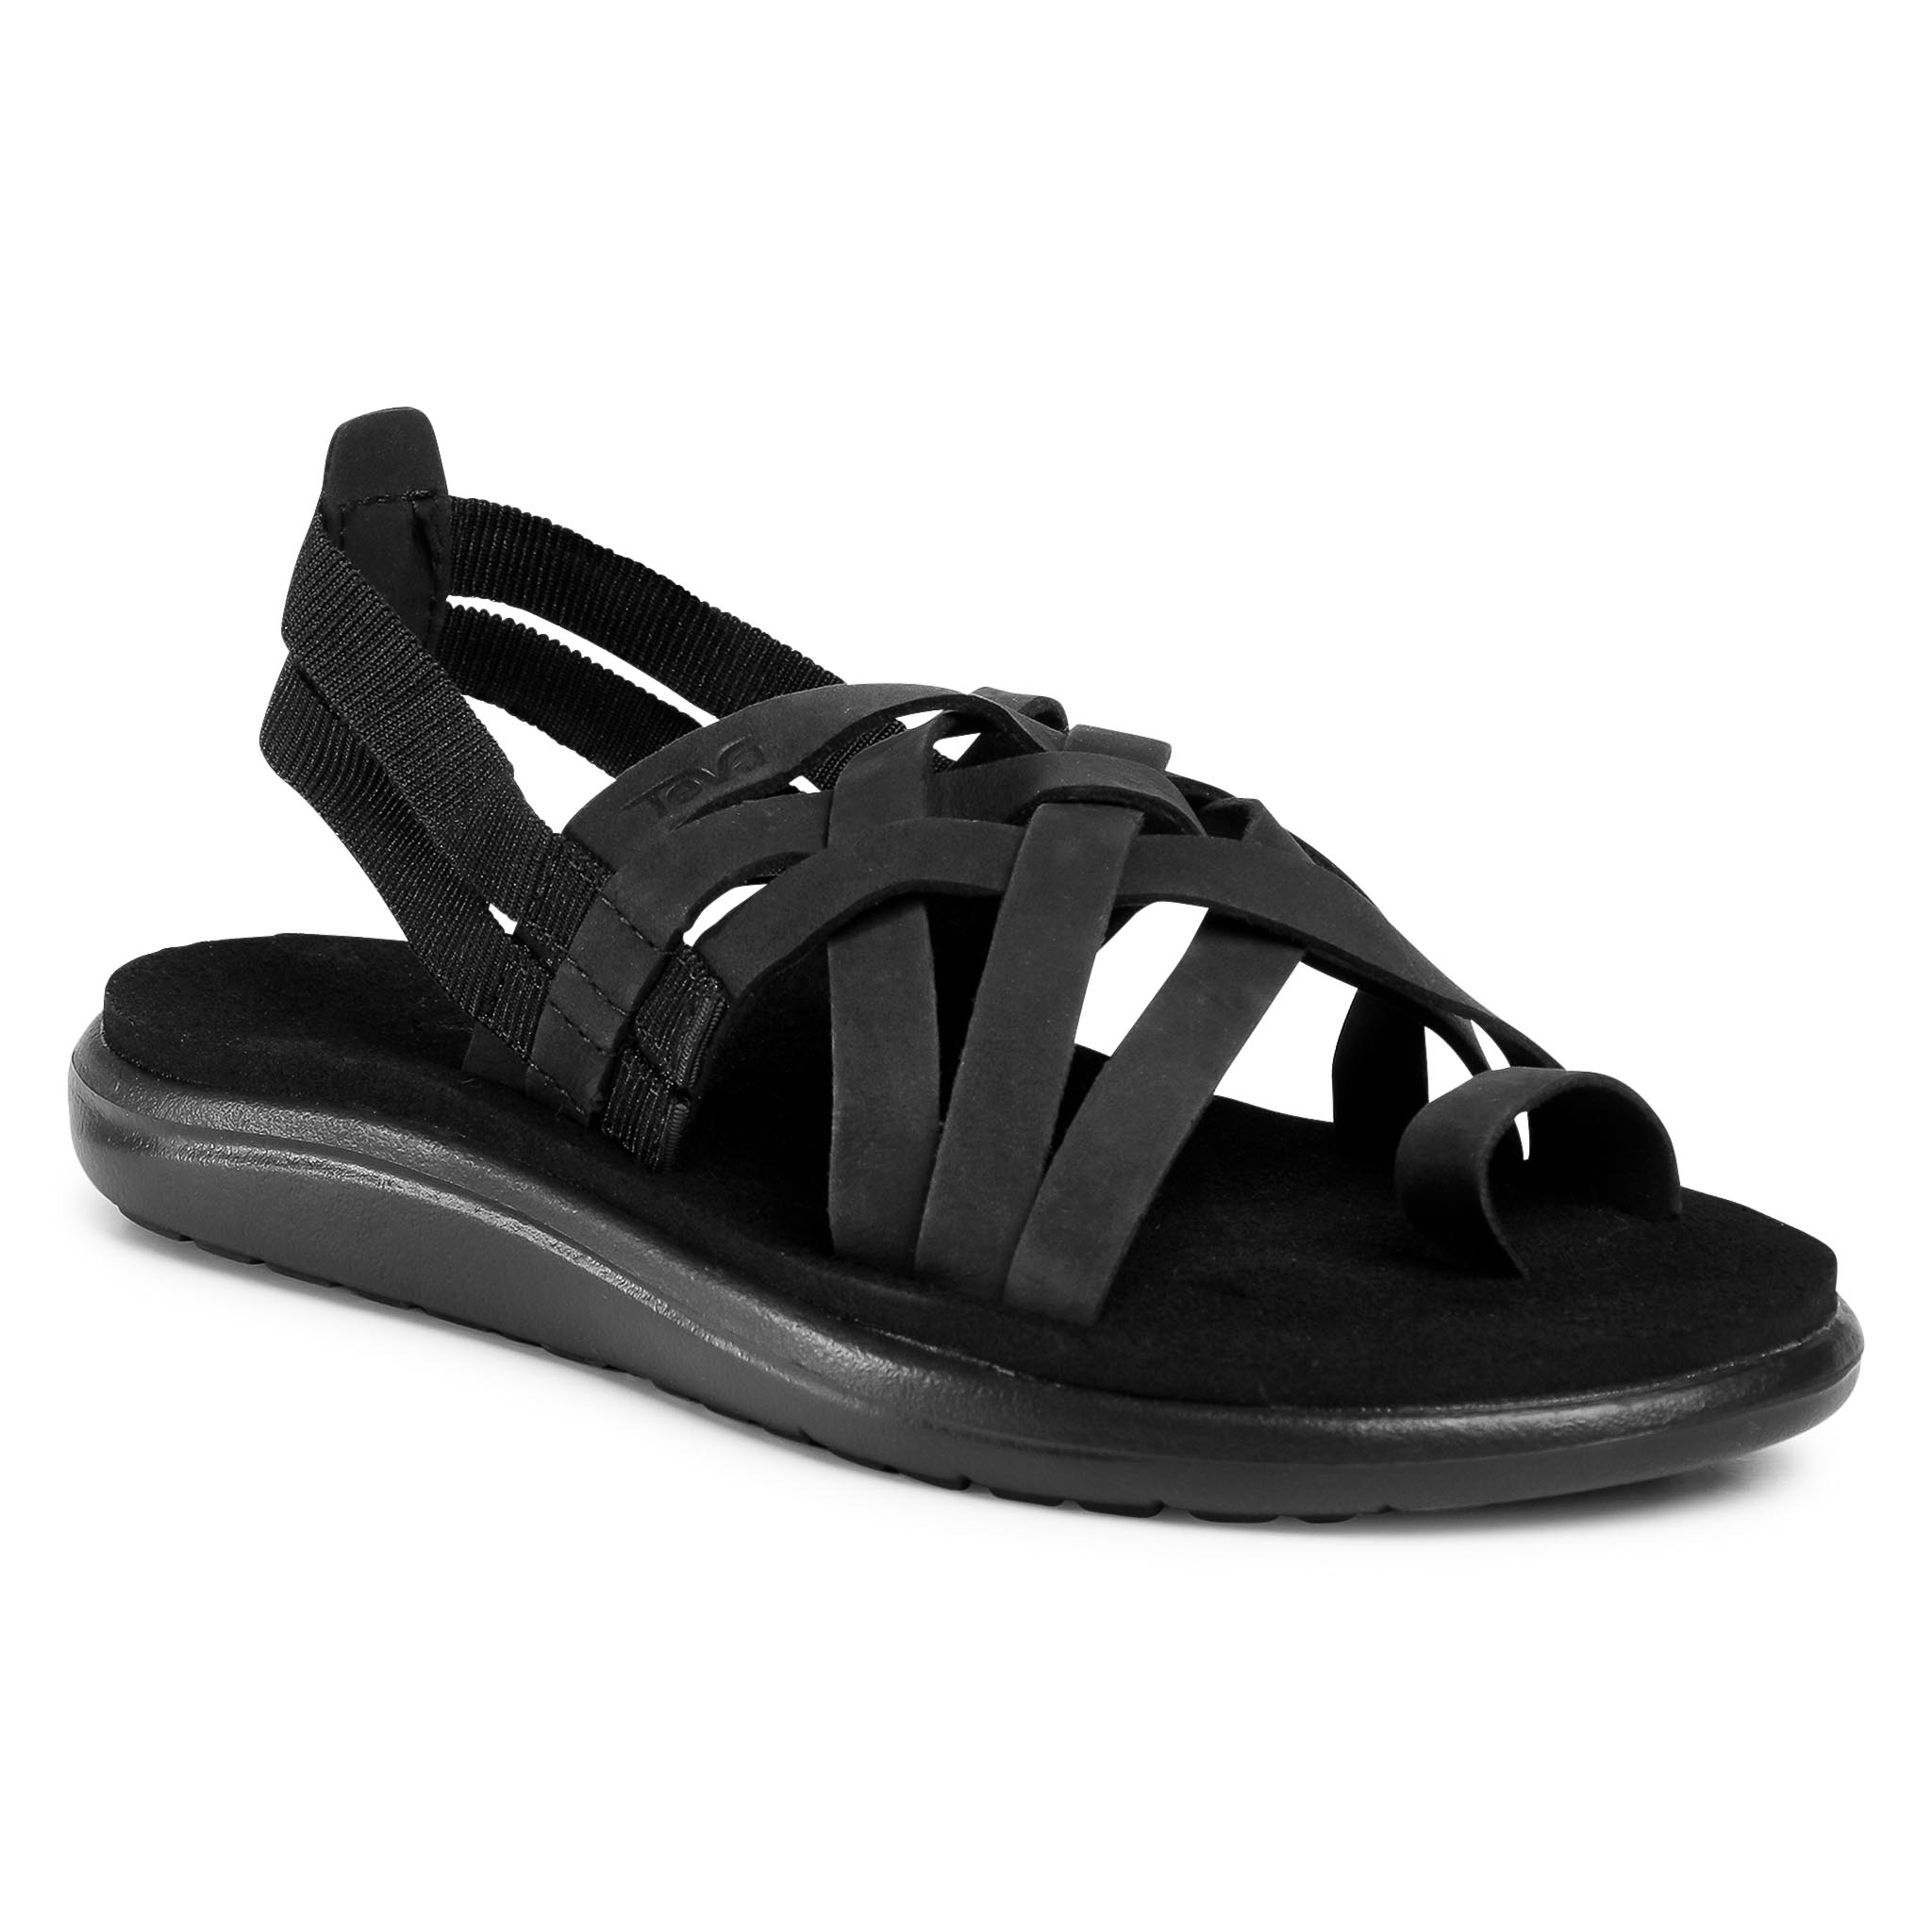 Sandale TEVA - Voya Strappy Leather 1106868 Blk